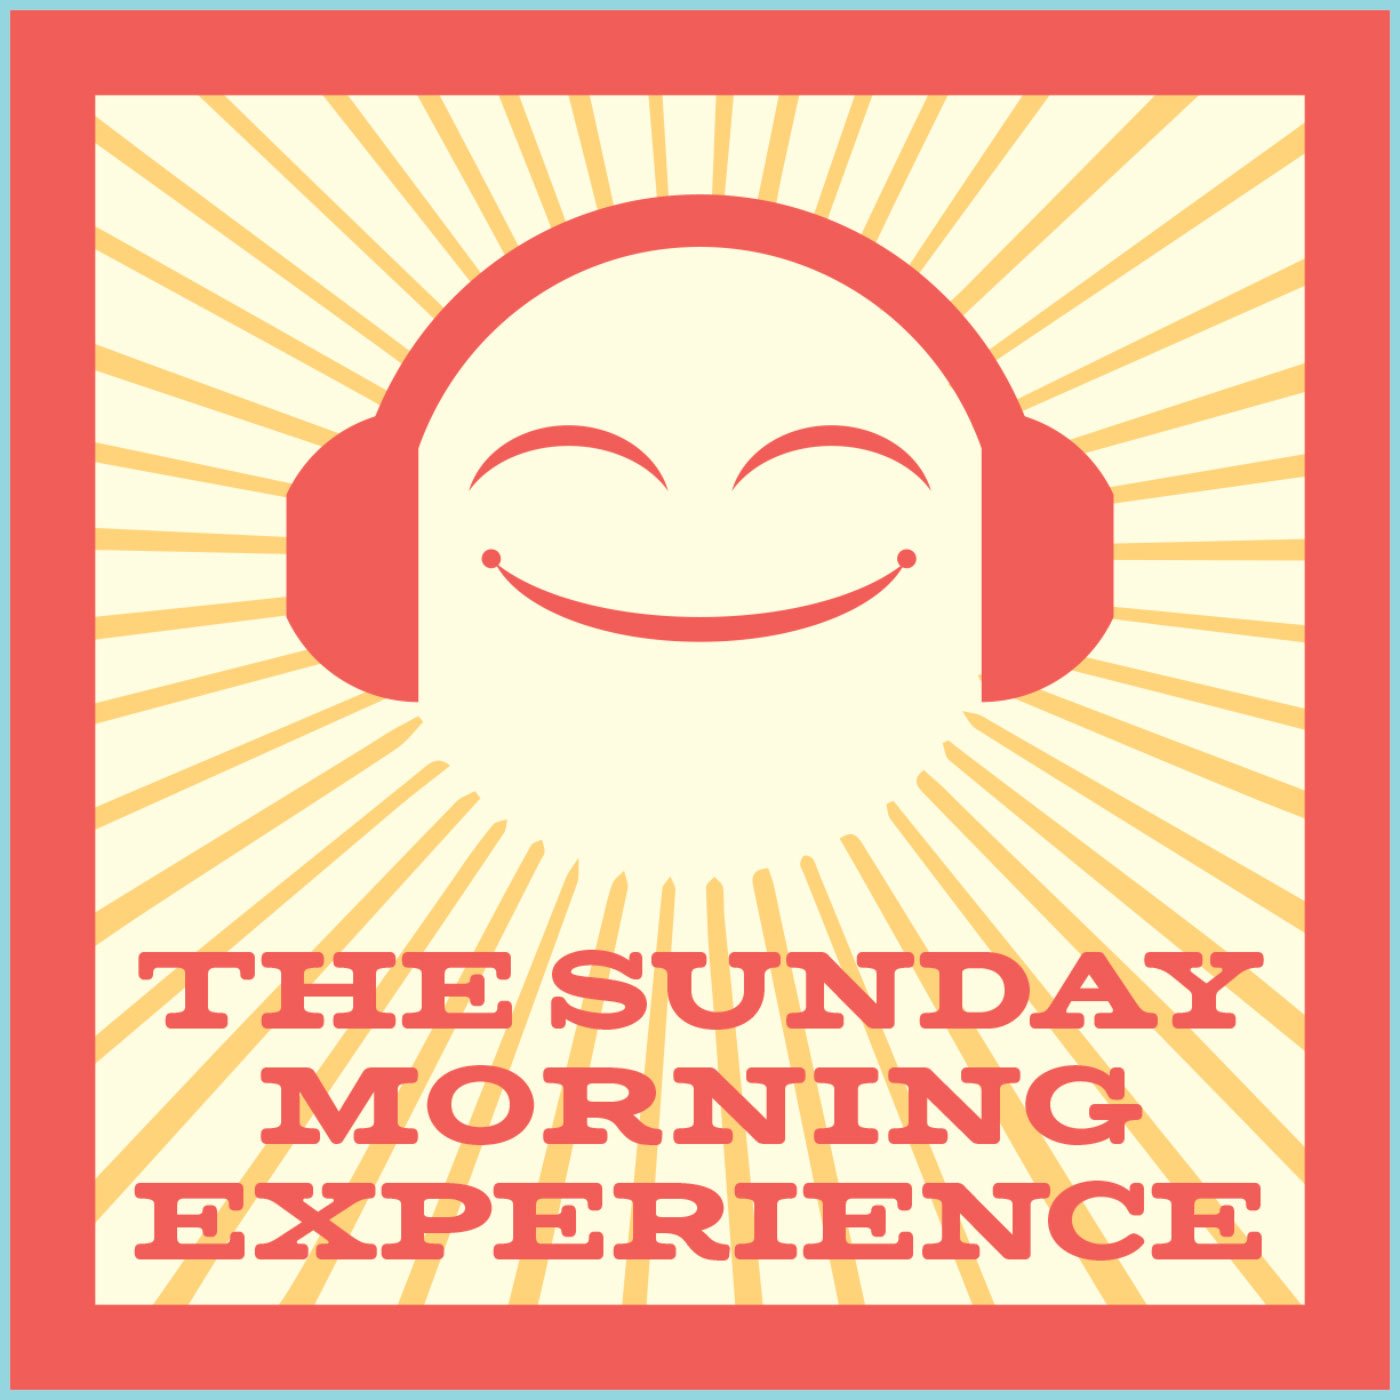 The Sunday Morning Experience Podcast